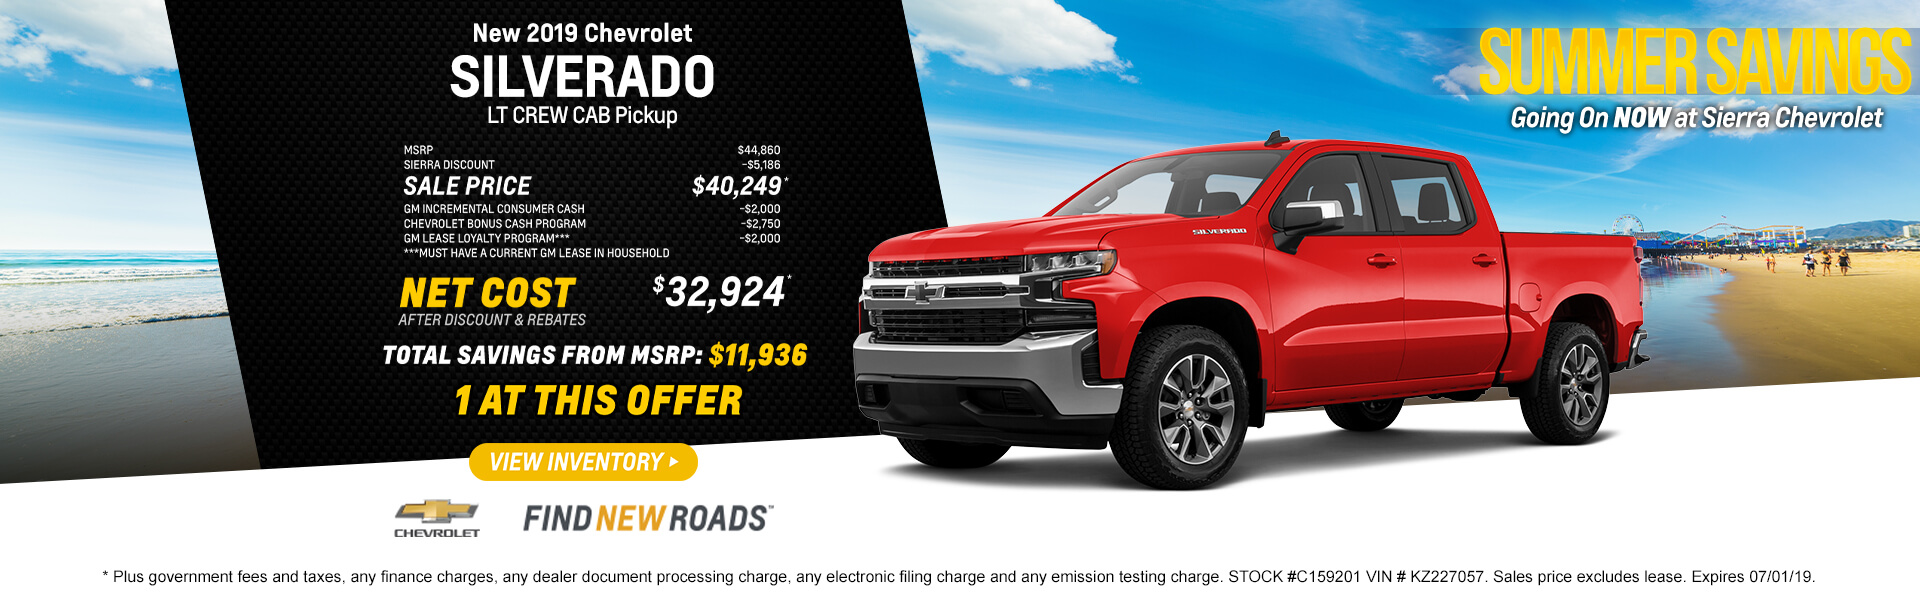 2019 CHEVROLET SILVERADO LT CREW CAB Pickup  MSRP  $45,435 SIERRA DISCOUNT -$5,186 SALE PRICE $40,249* GM INCREMENTAL CONSUMER CASH -$2,000 CHEVROLET BONUS CASH PROGRAM -$2,750 GM LEASE LOYALTY PROGRAM***  -$2,000 ***Must have a current GM lease in household  NET COST AFTER DISCOUNT AND REBATES $33,499*  Total Savings From MSRP $ 11,936  1 at this offer  * Plus government fees and taxes, any finance charges, any dealer document processing charge, any electronic filing charge and any emission testing charge. STOCK #C158489 VIN # KZ187875. Sales price excludes lease. Expires 07/01/19.